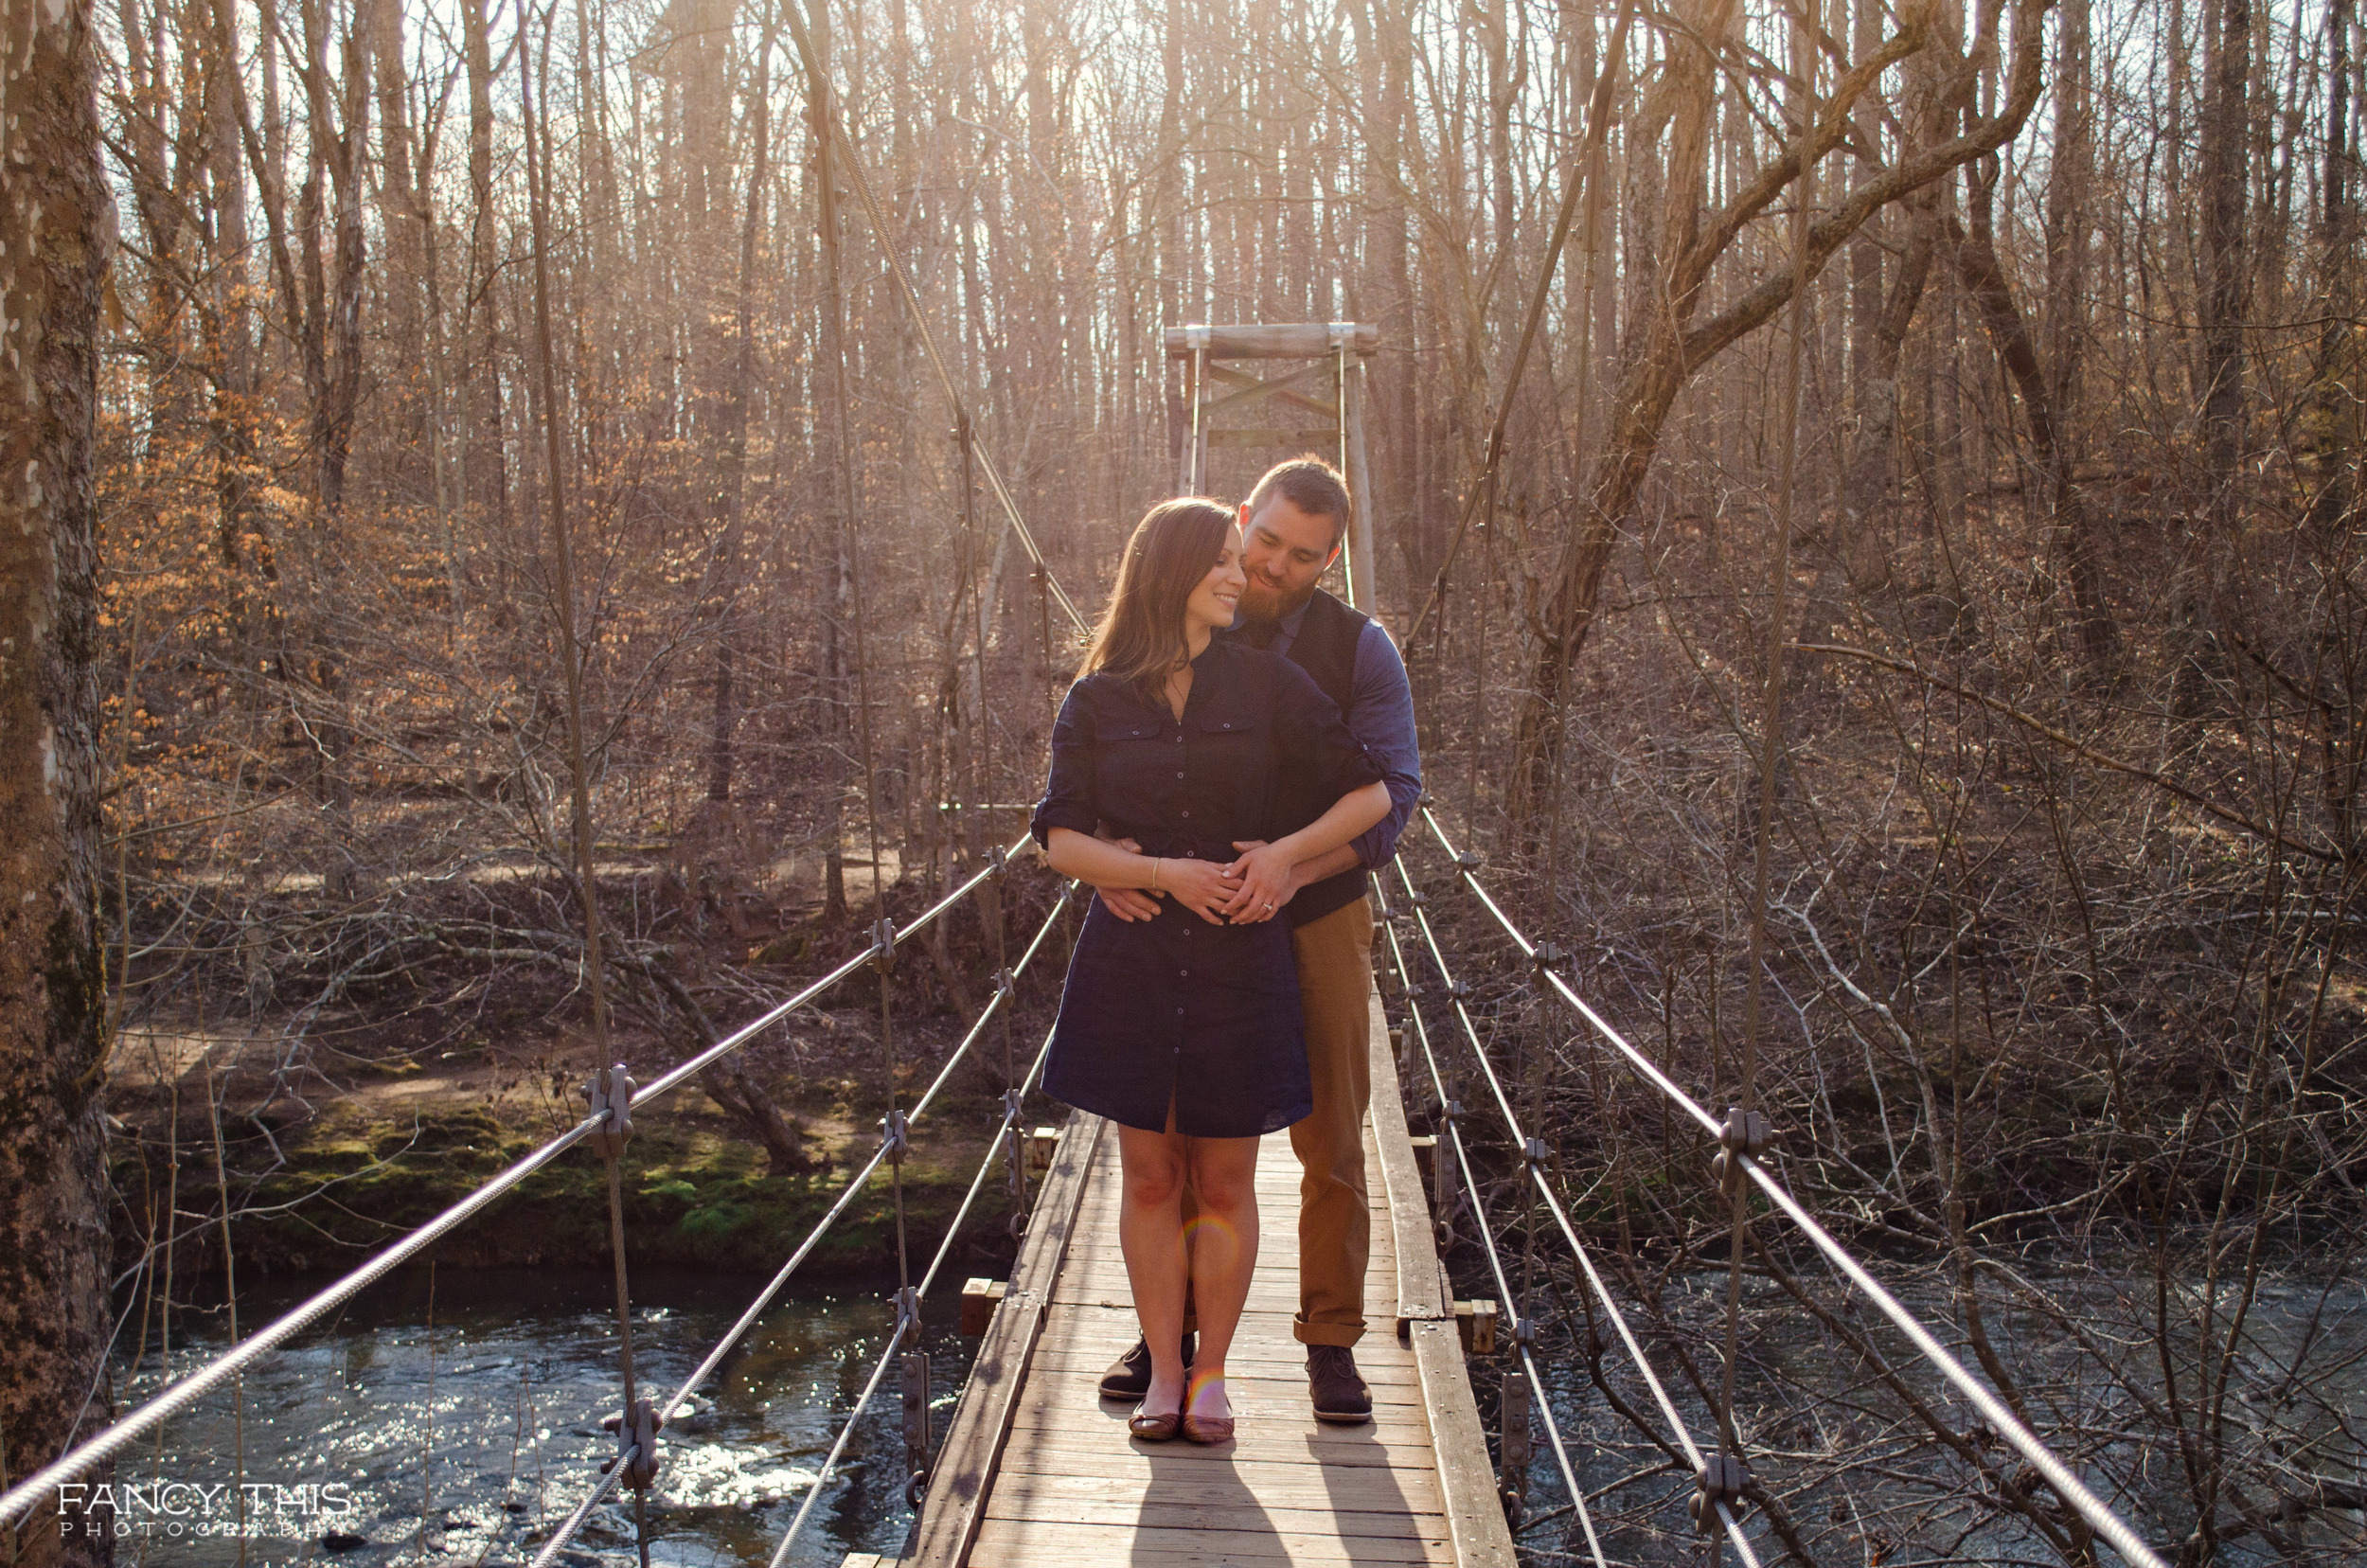 garrett_diana_engagement (49 of 130).jpg